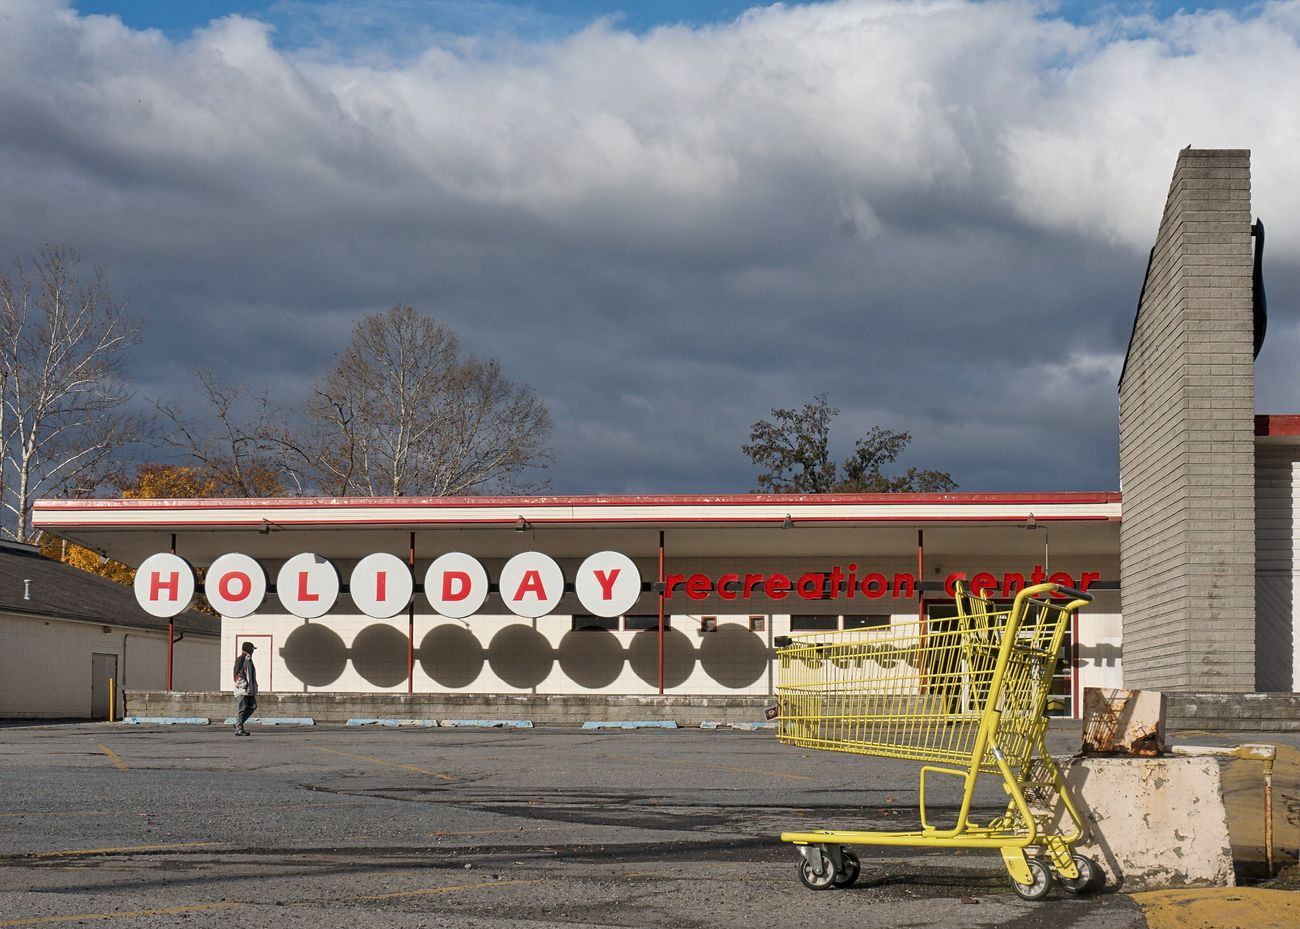 Holiday Bowling Alley Shopping Cart Weather Wappingers Falls Here Belongs To Me